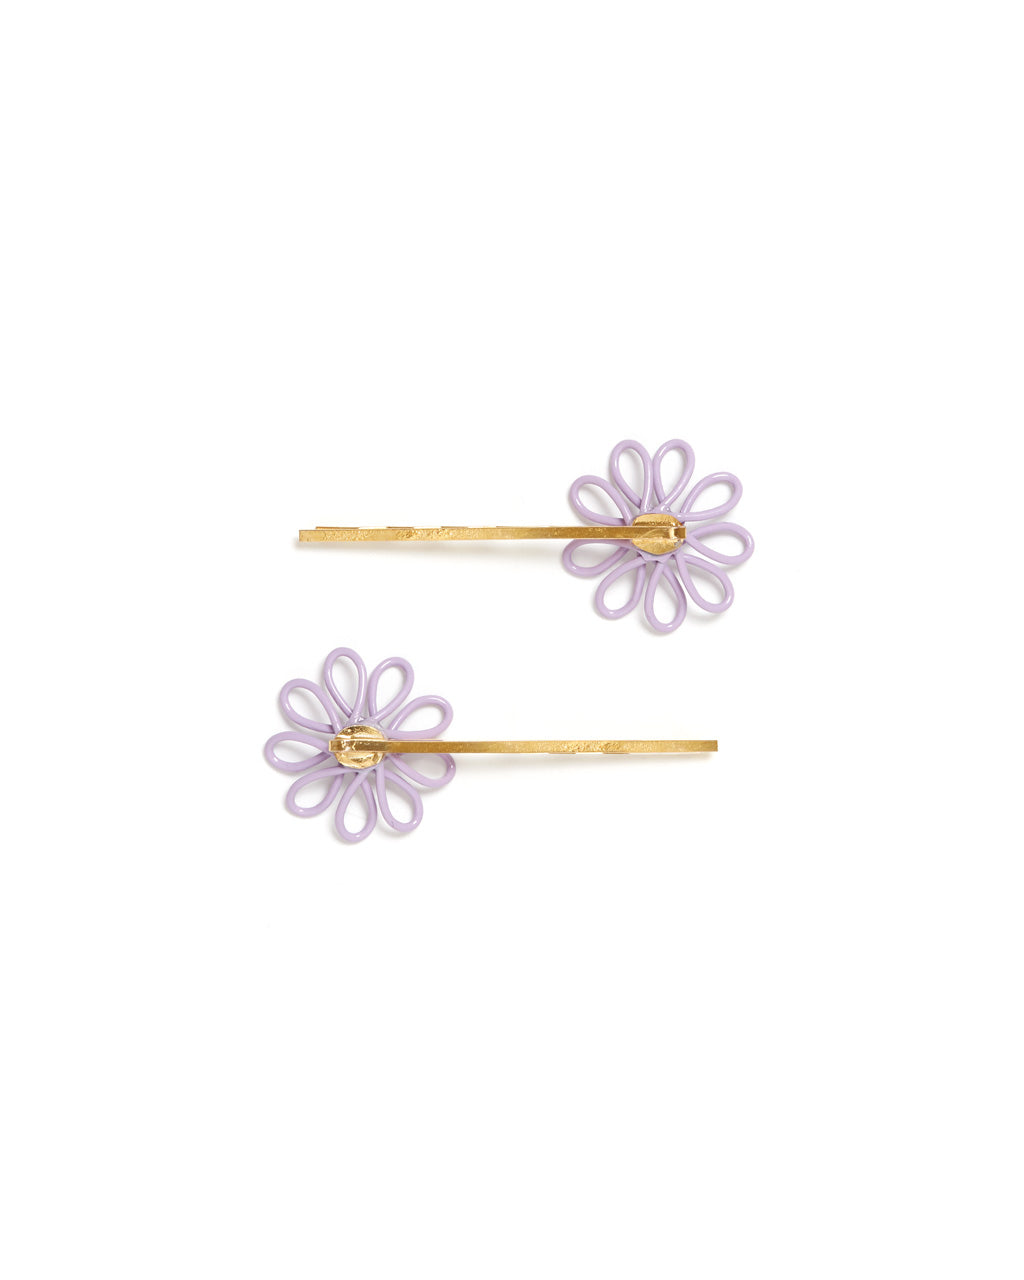 Back shot of lilac flower barrette with a pearl center and gold bobby pin base.